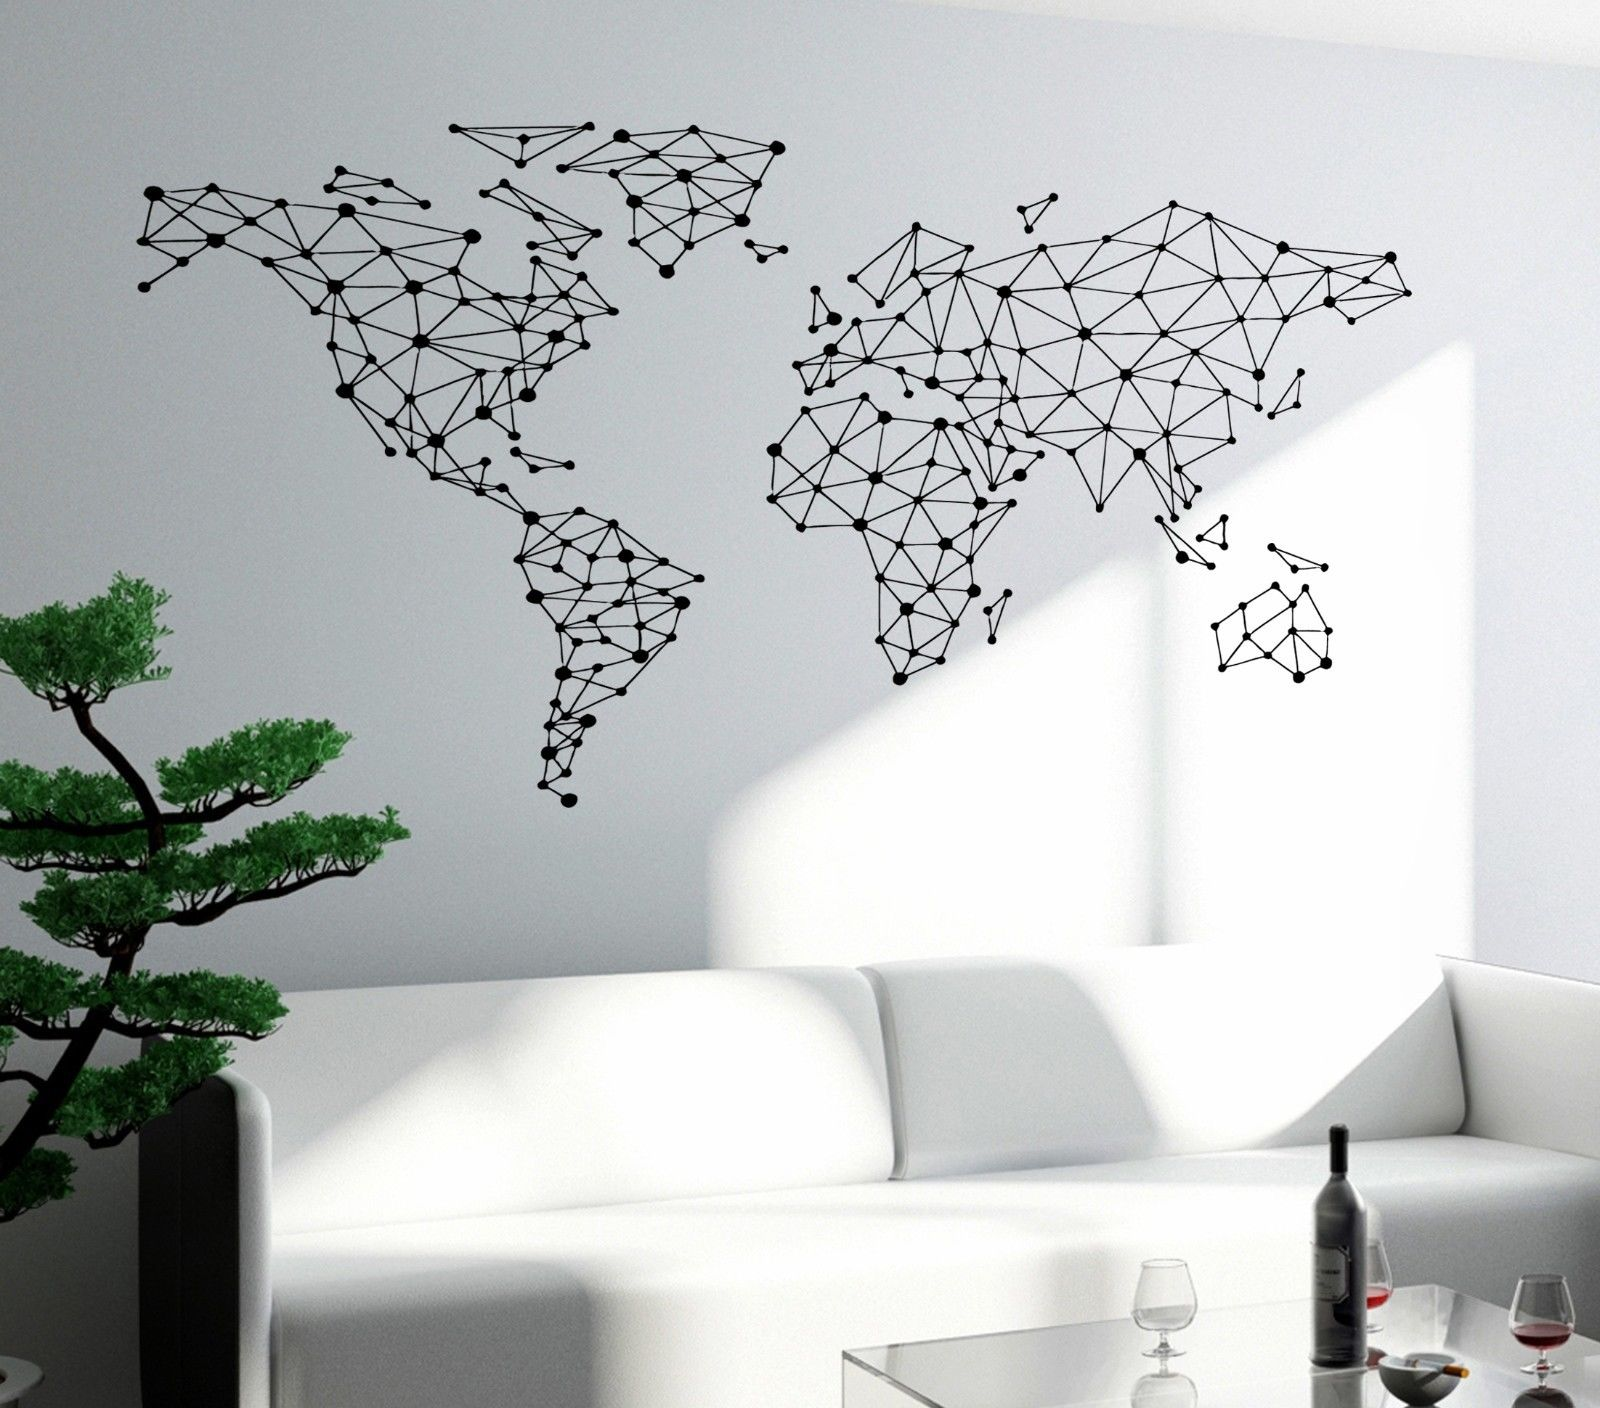 Us Map Wall Art PromotionShop For Promotional Us Map Wall Art On - Us map wall art